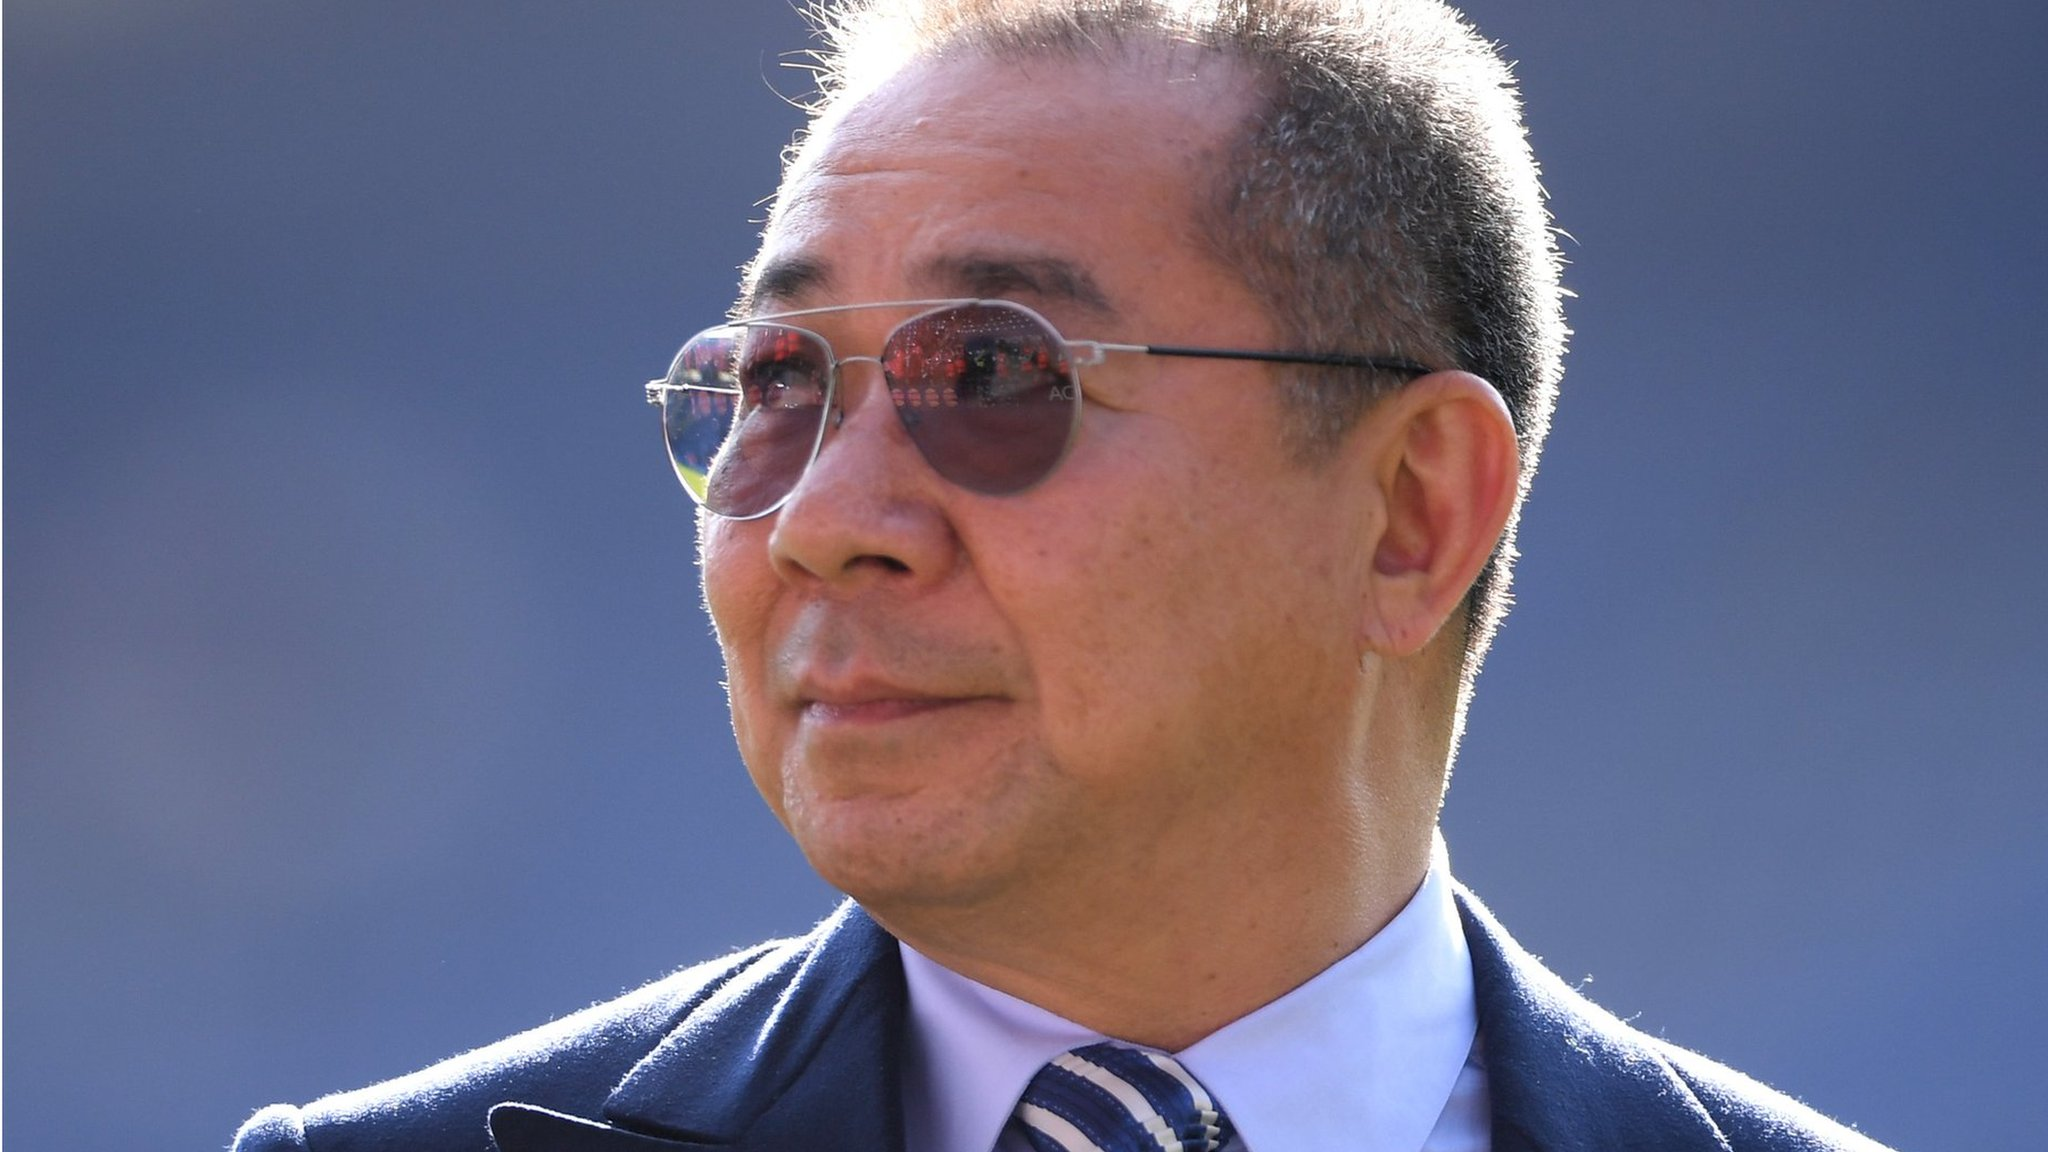 Humble and generous, but a private enigma - who was Leicester Citys owner?